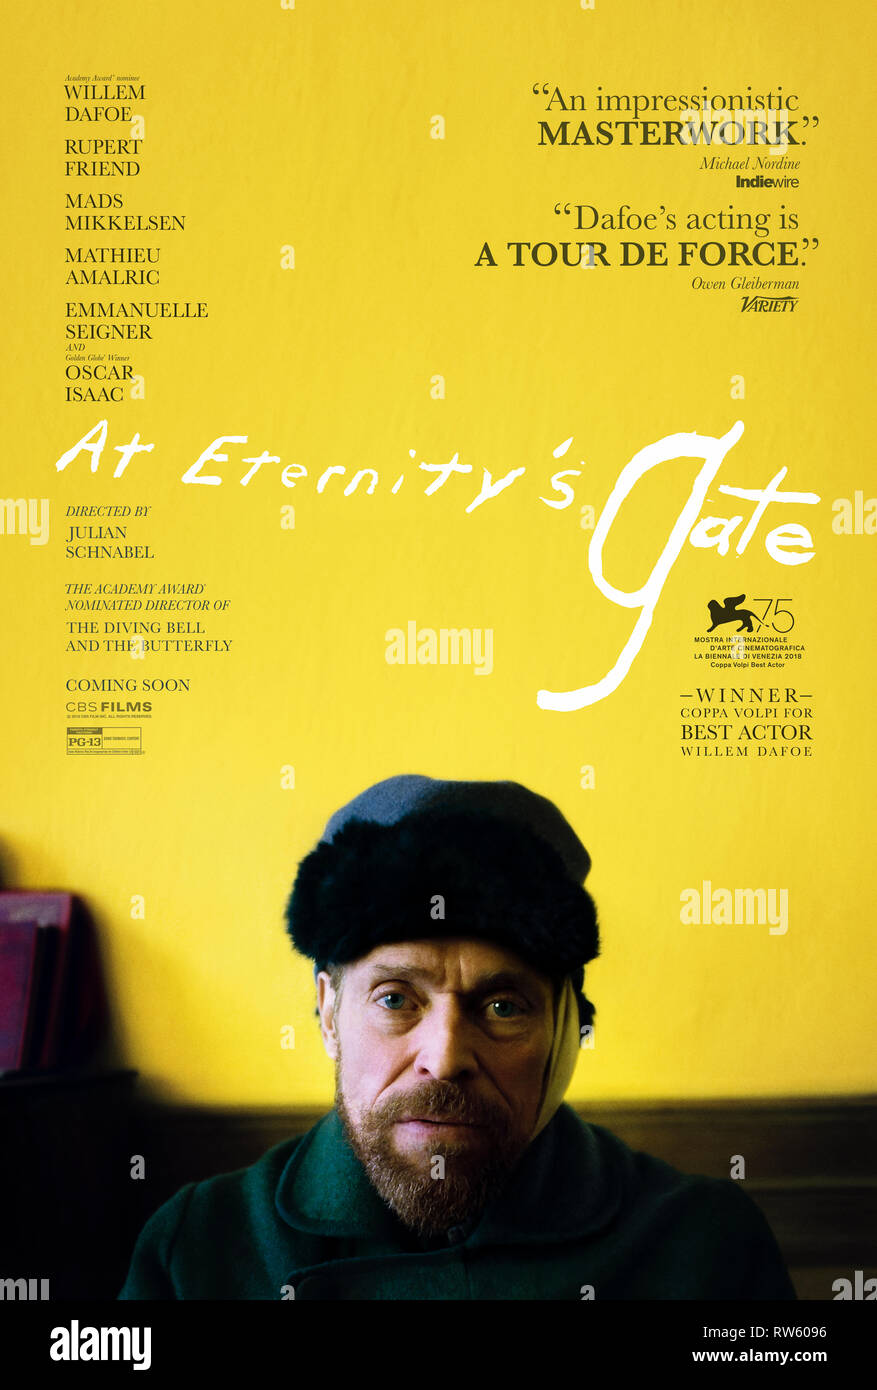 At Eternity's Gate (2018) directed by Julian Schnabel and starring Willem Dafoe, Rupert Friend and Oscar Isaac. Biopic about the life of Vincent van Gogh. - Stock Image